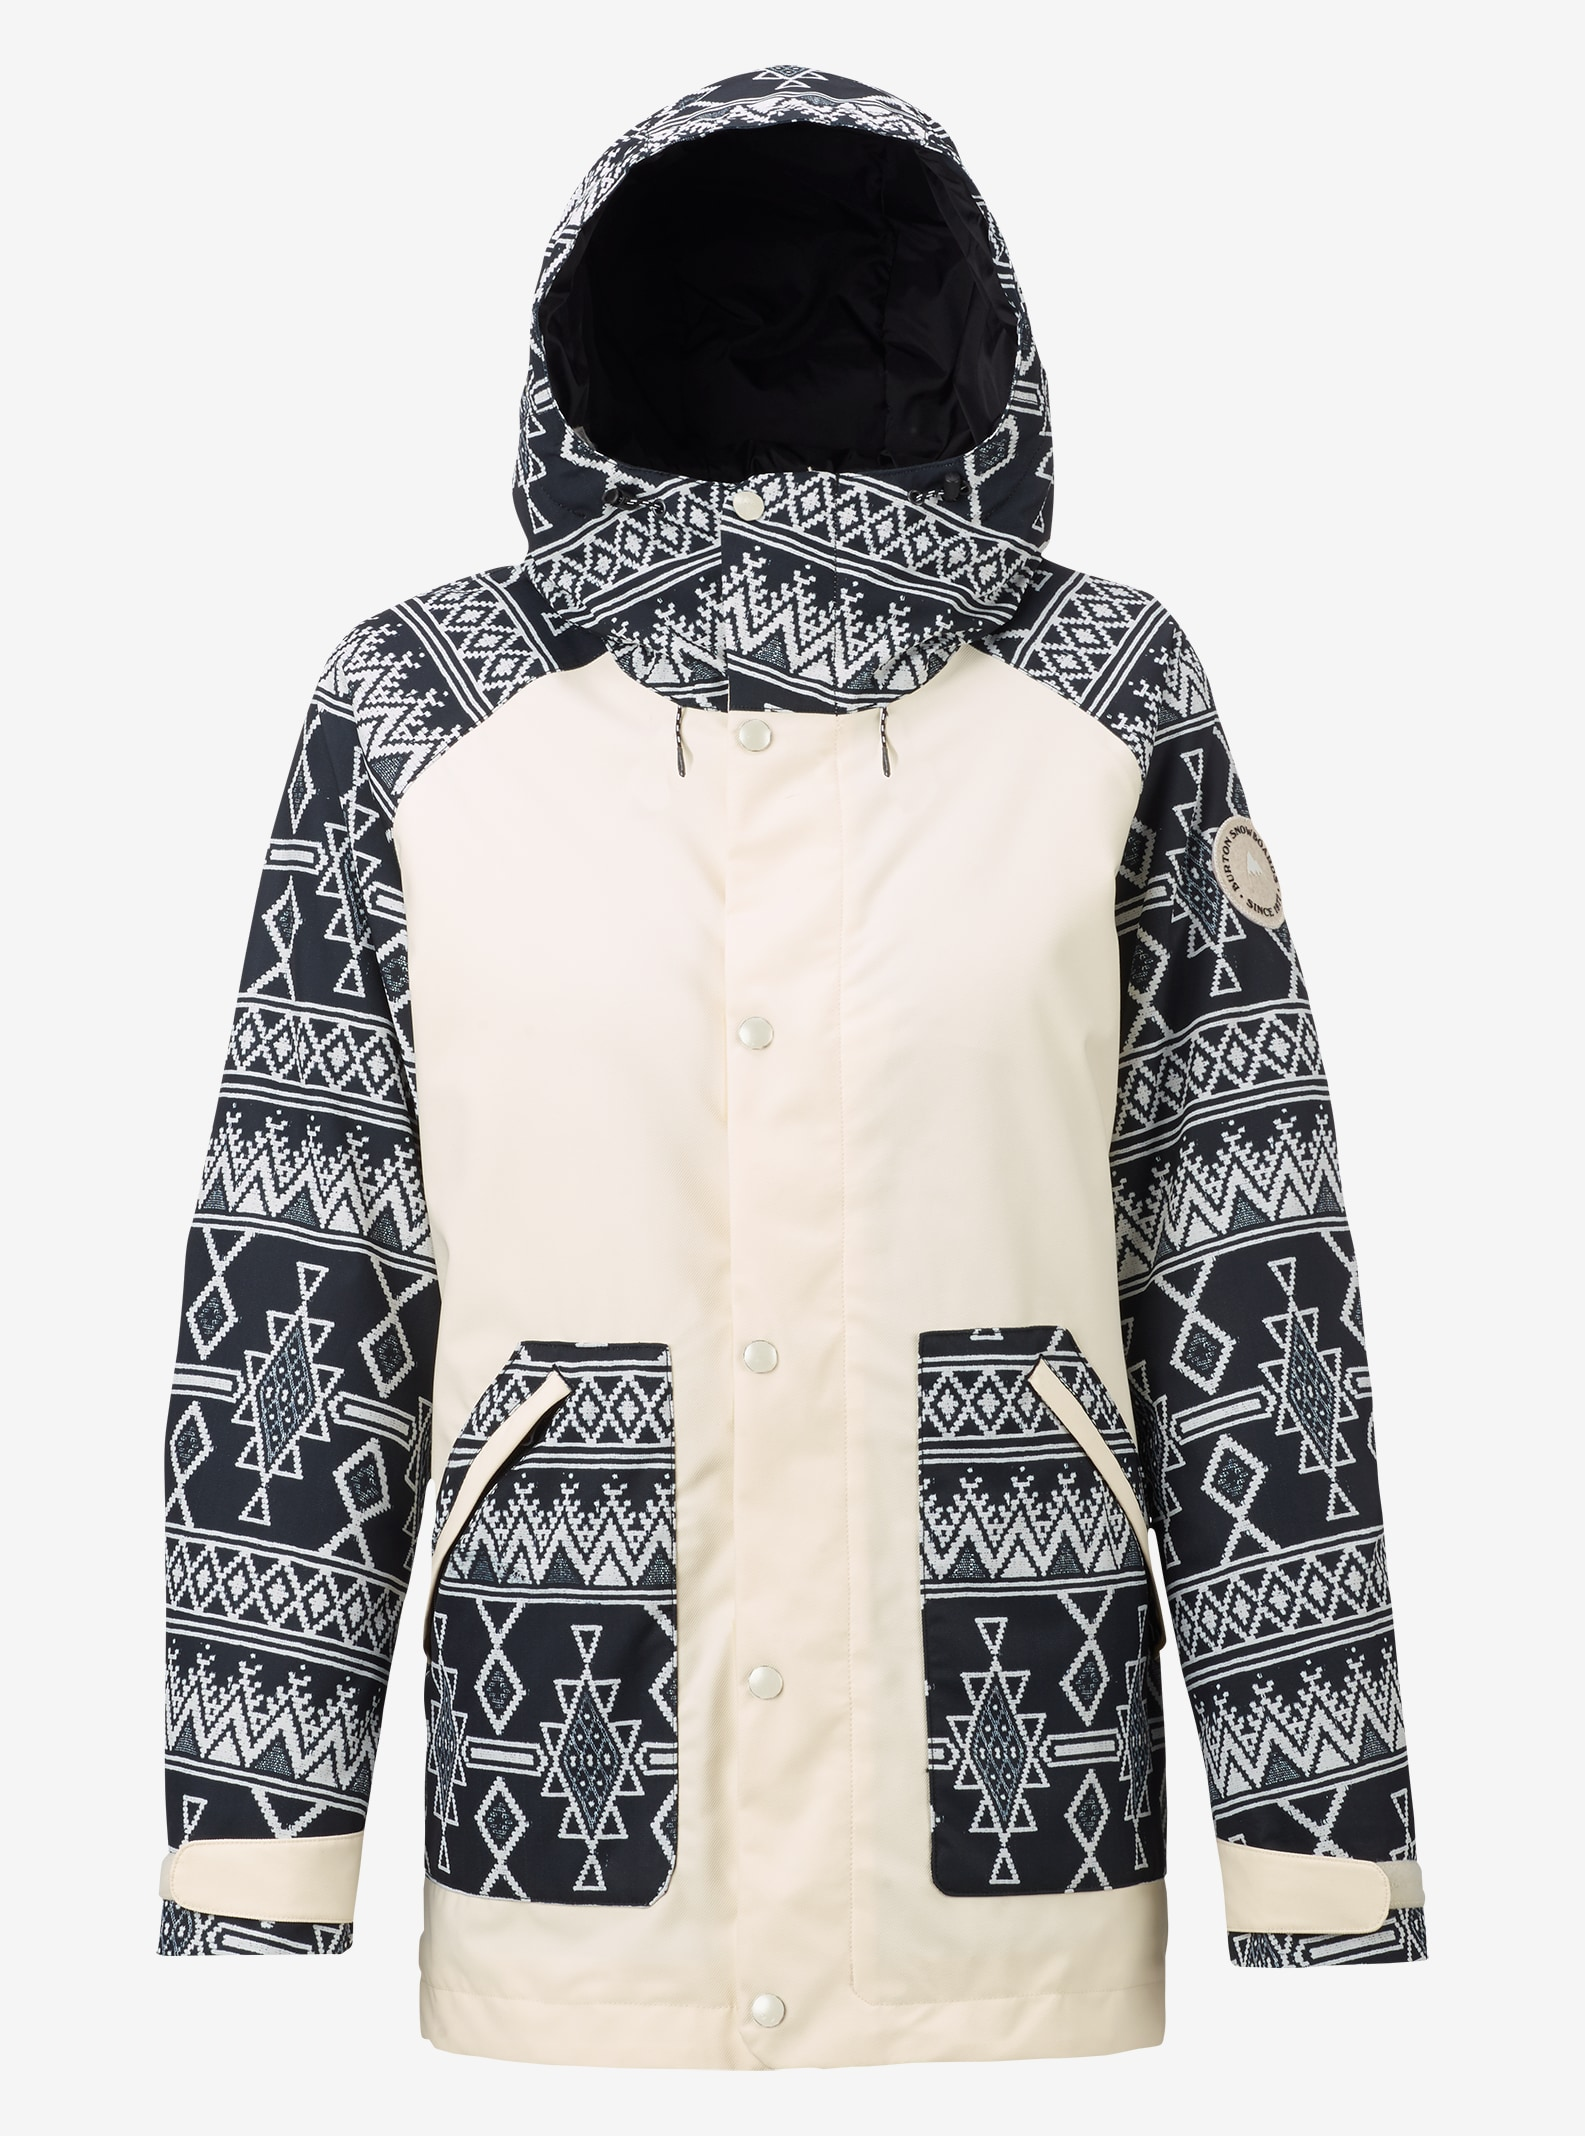 Black And White Jacket Womens | Fit Jacket